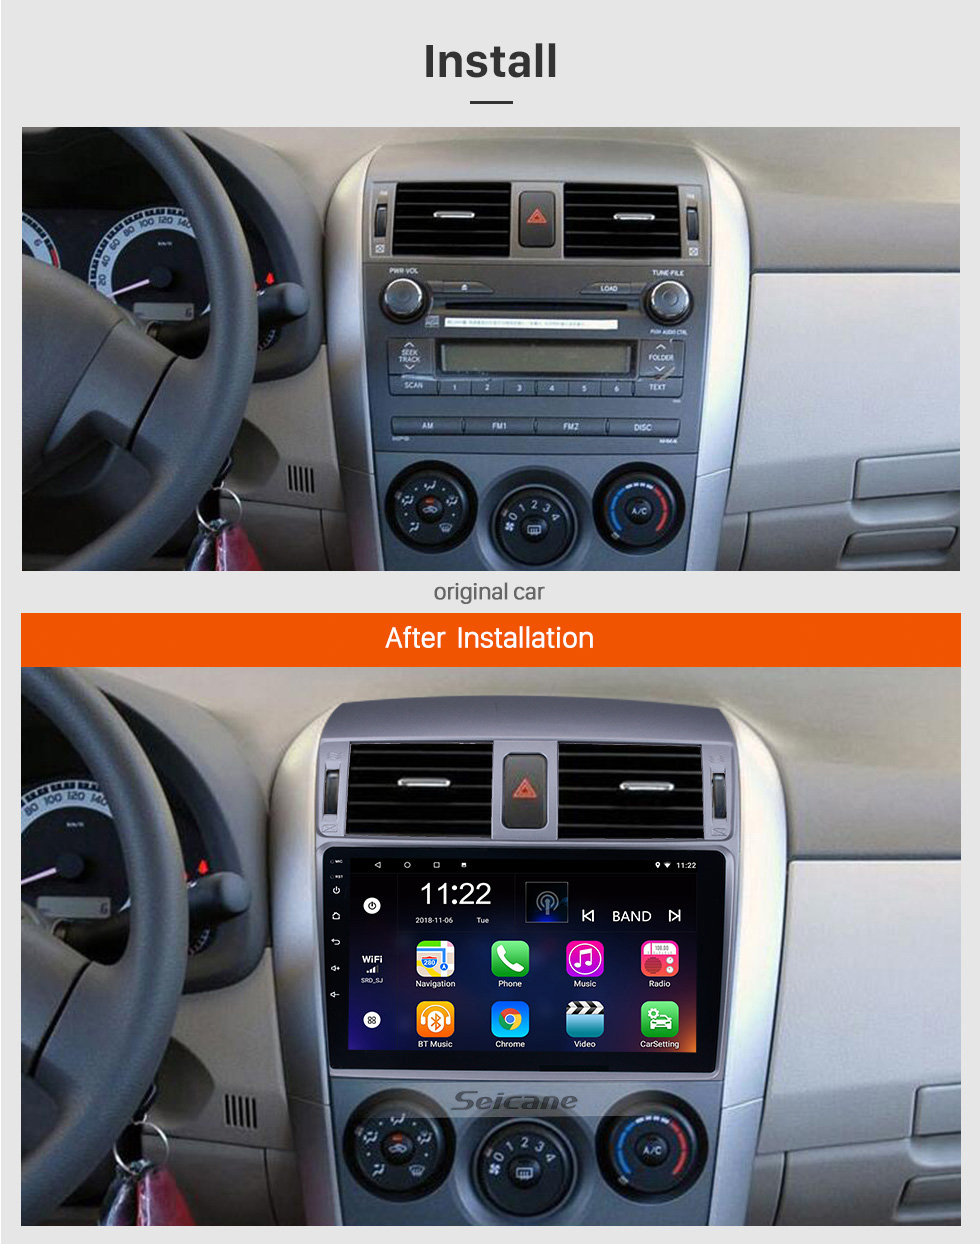 Seicane 9 inch 2007 2008 2009 2010 Toyota OLD Corolla Android 10.0 Bluetooth Radio GPS Navigation Head unit Support WIFI 1080P Video Backup Camera Audio system DVR OBD2